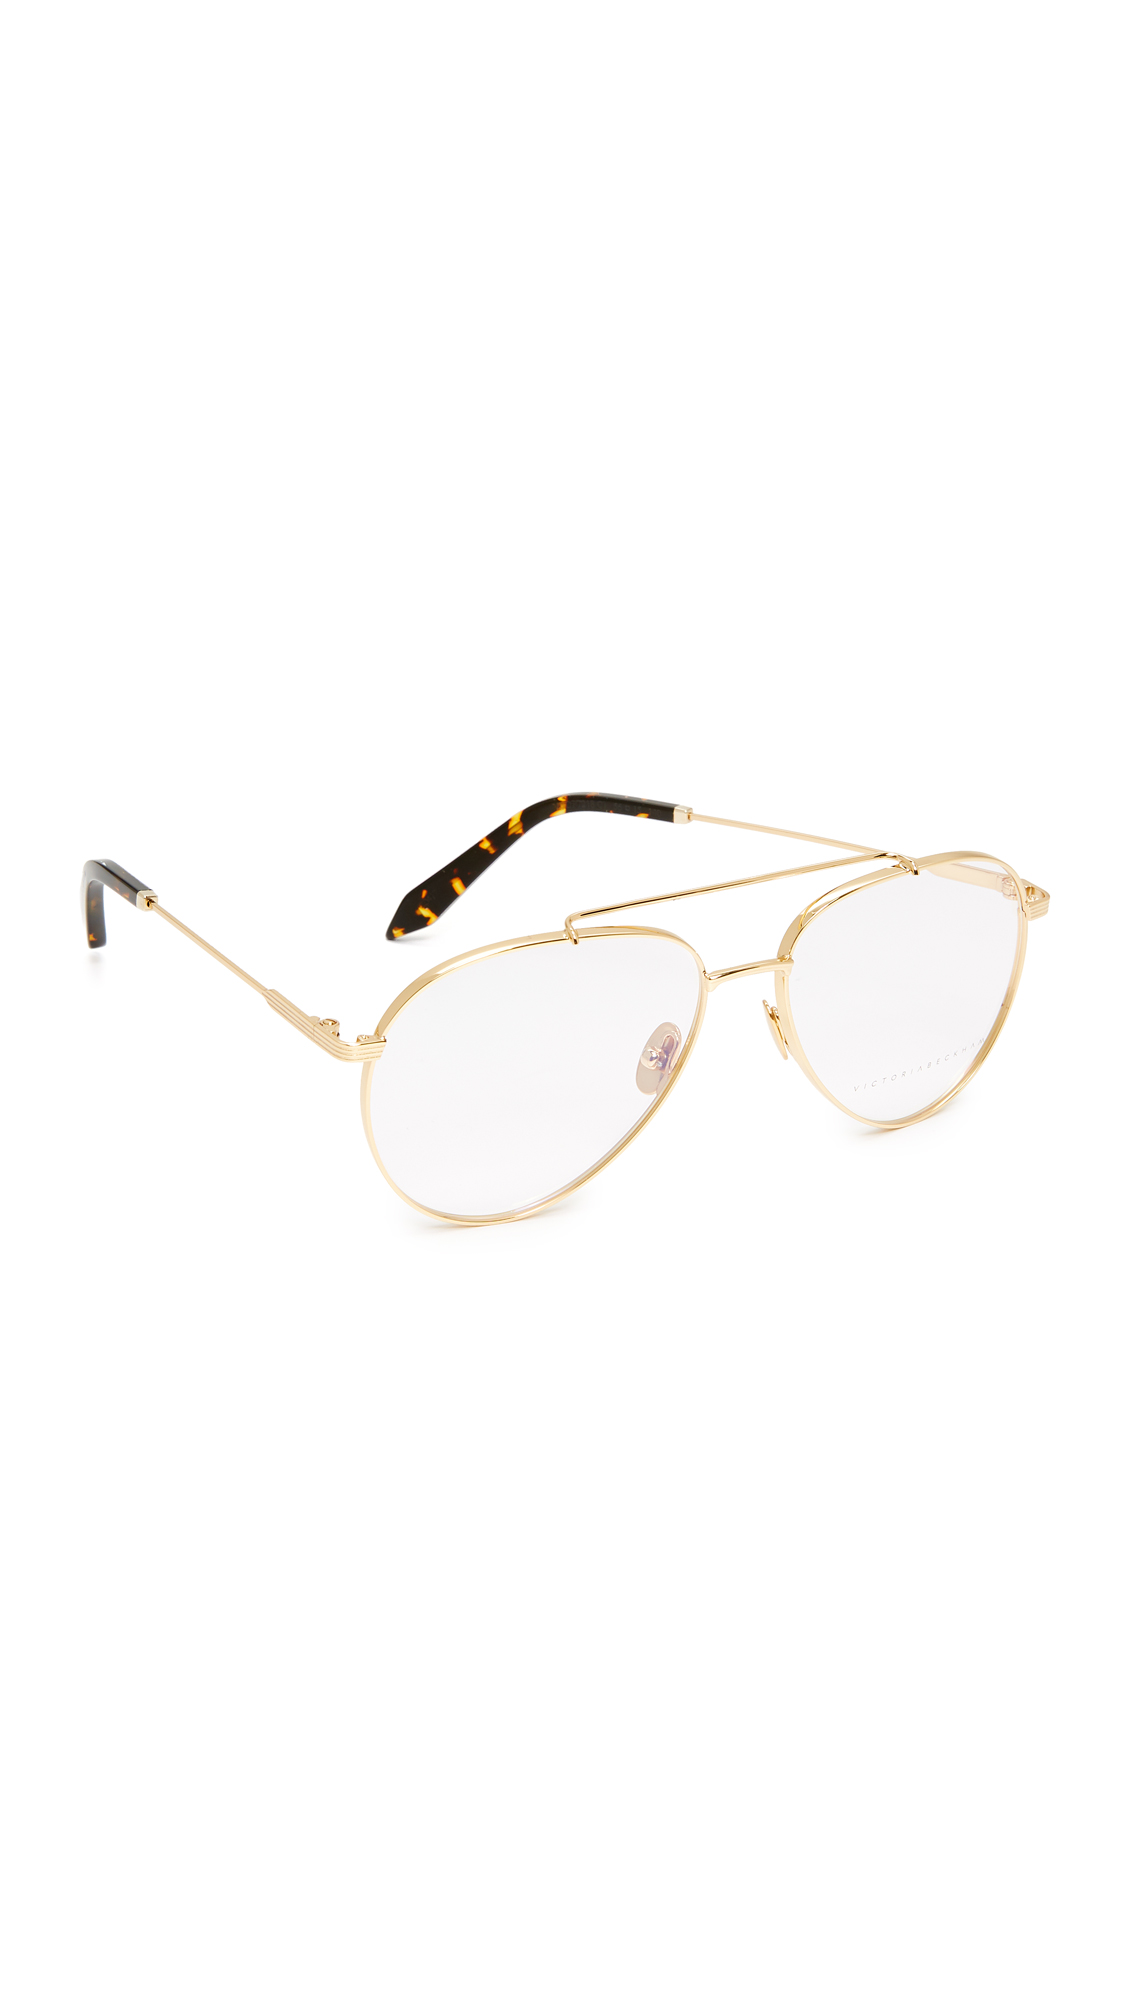 Victoria Beckham Grooved Aviator Glasses - Gold/Clear